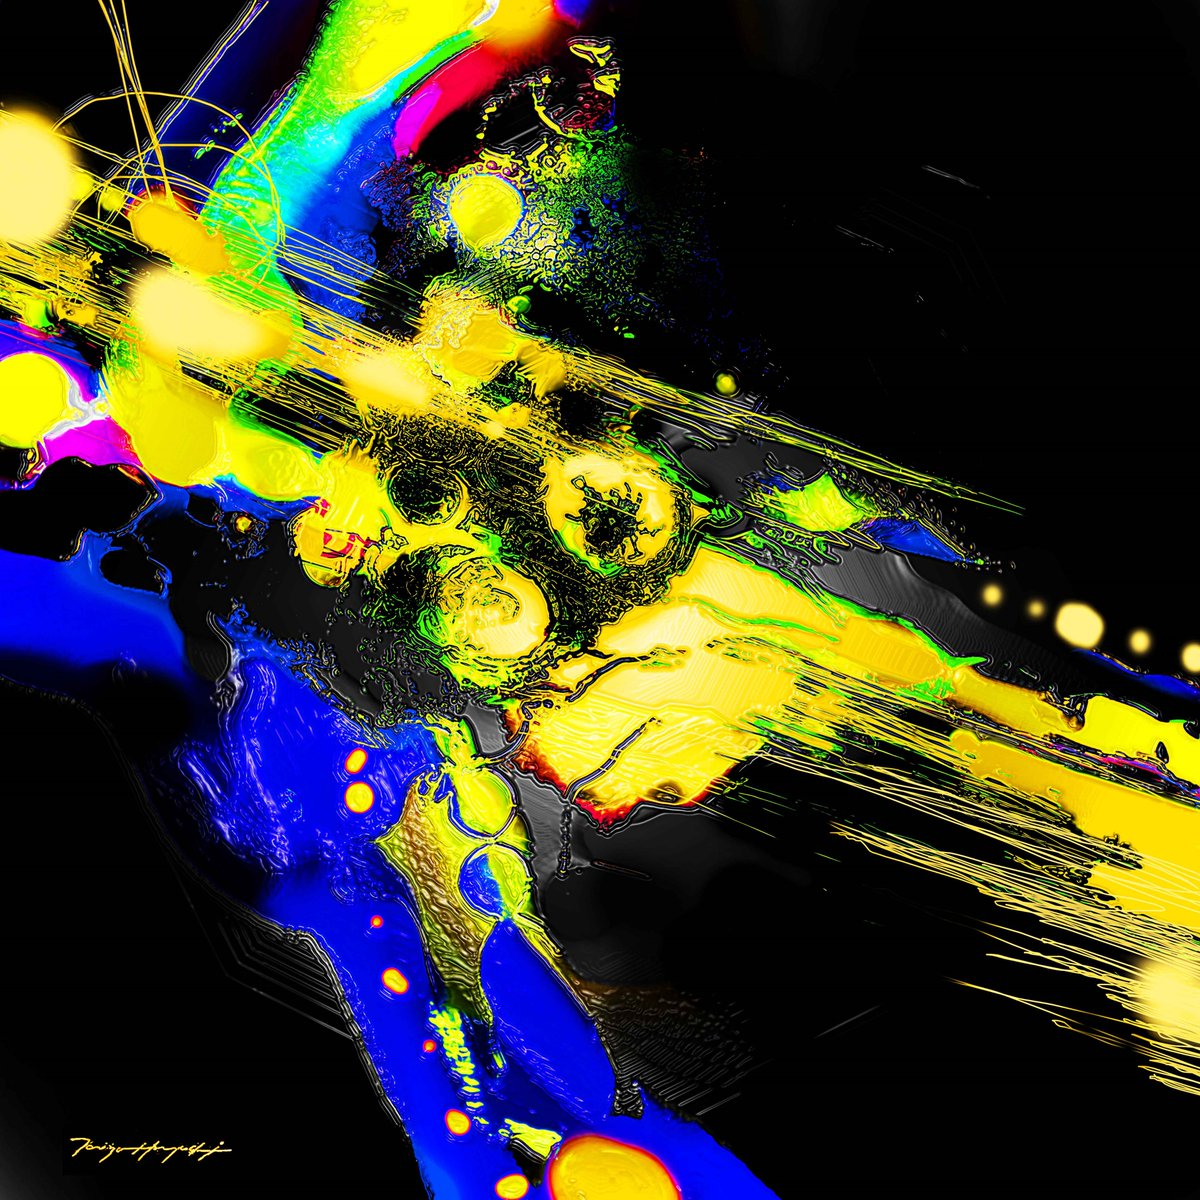 """"""" The Beat of Night #002 &quot;  Art works by Taizo Hayashi ; japan #art #abatractpainting #abstractart #digital  #modernart  #絵描きさんと繋がりたい #抽象画<br>http://pic.twitter.com/EFUjwy75Na"""